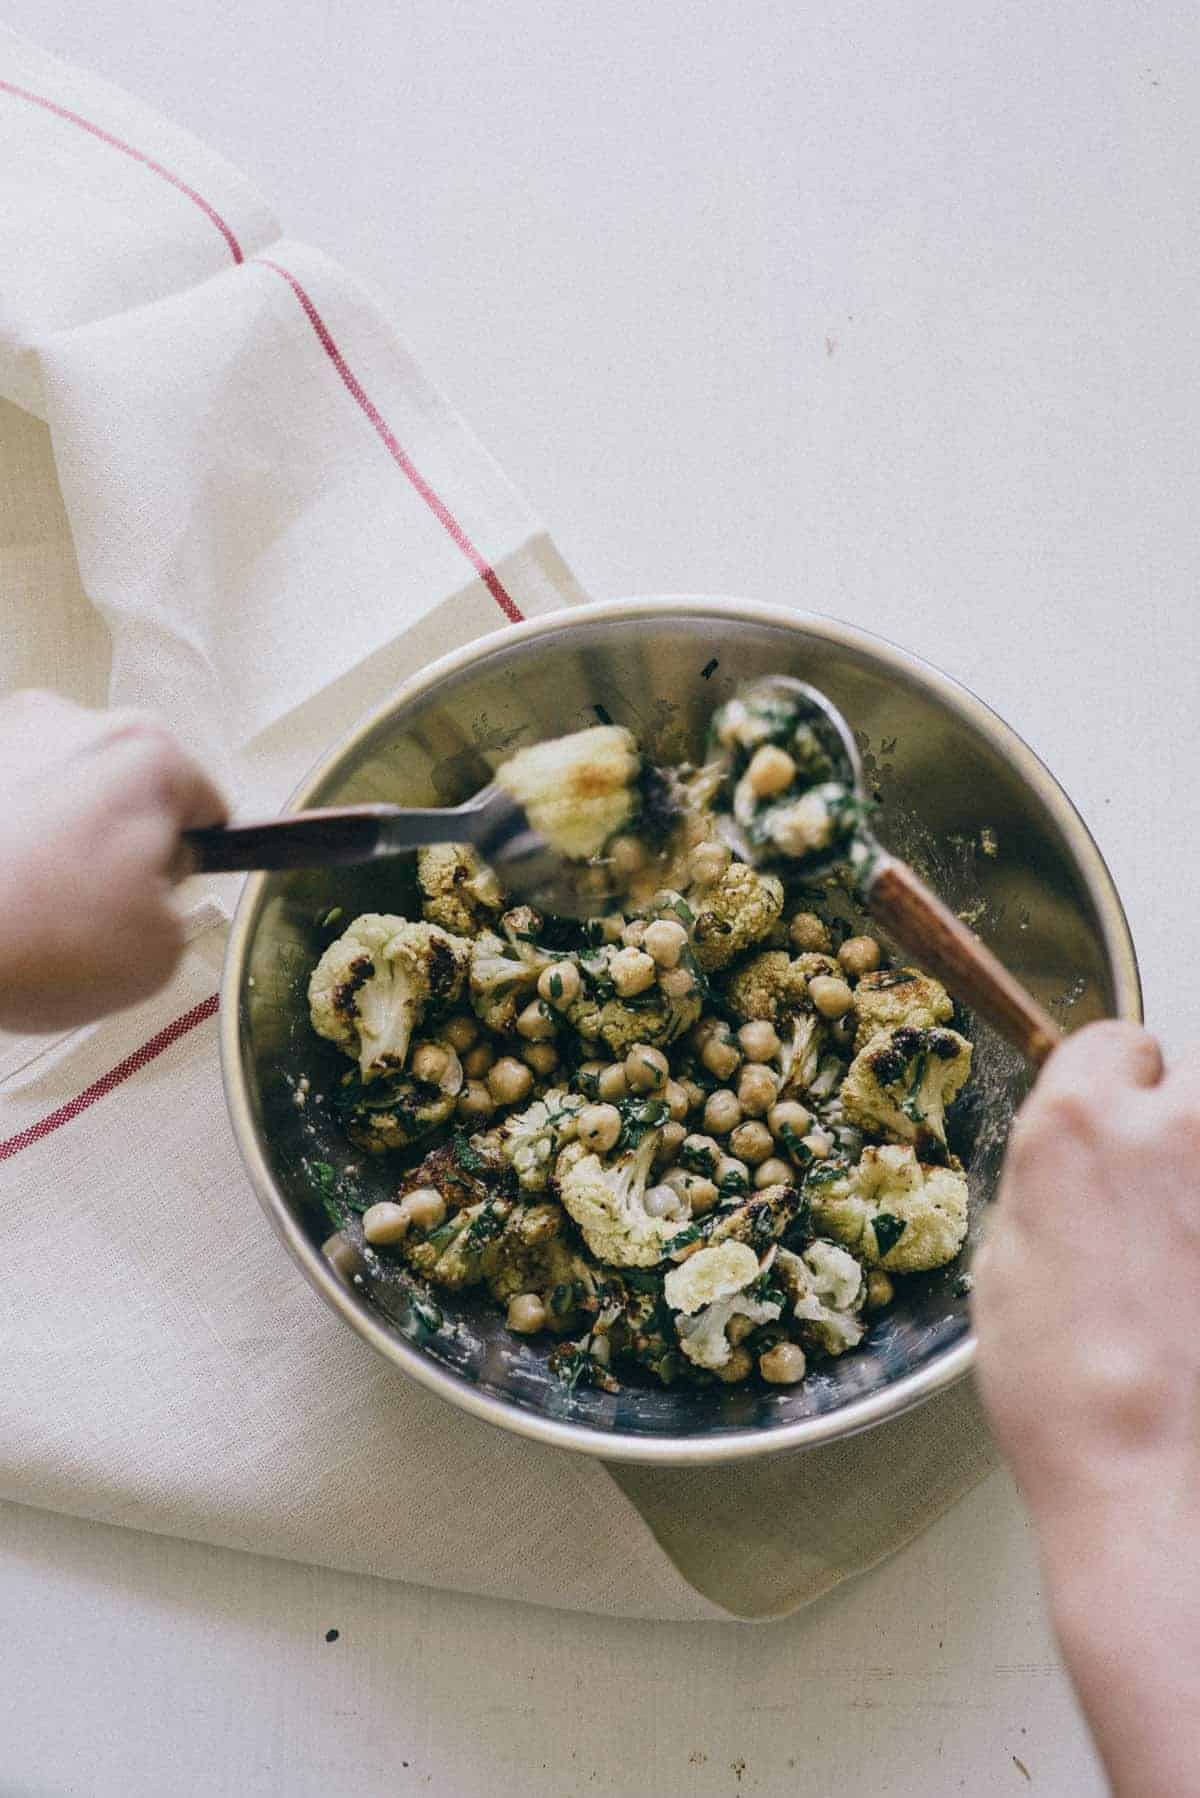 tossing roasted cauliflower chickpea salad in a bowl